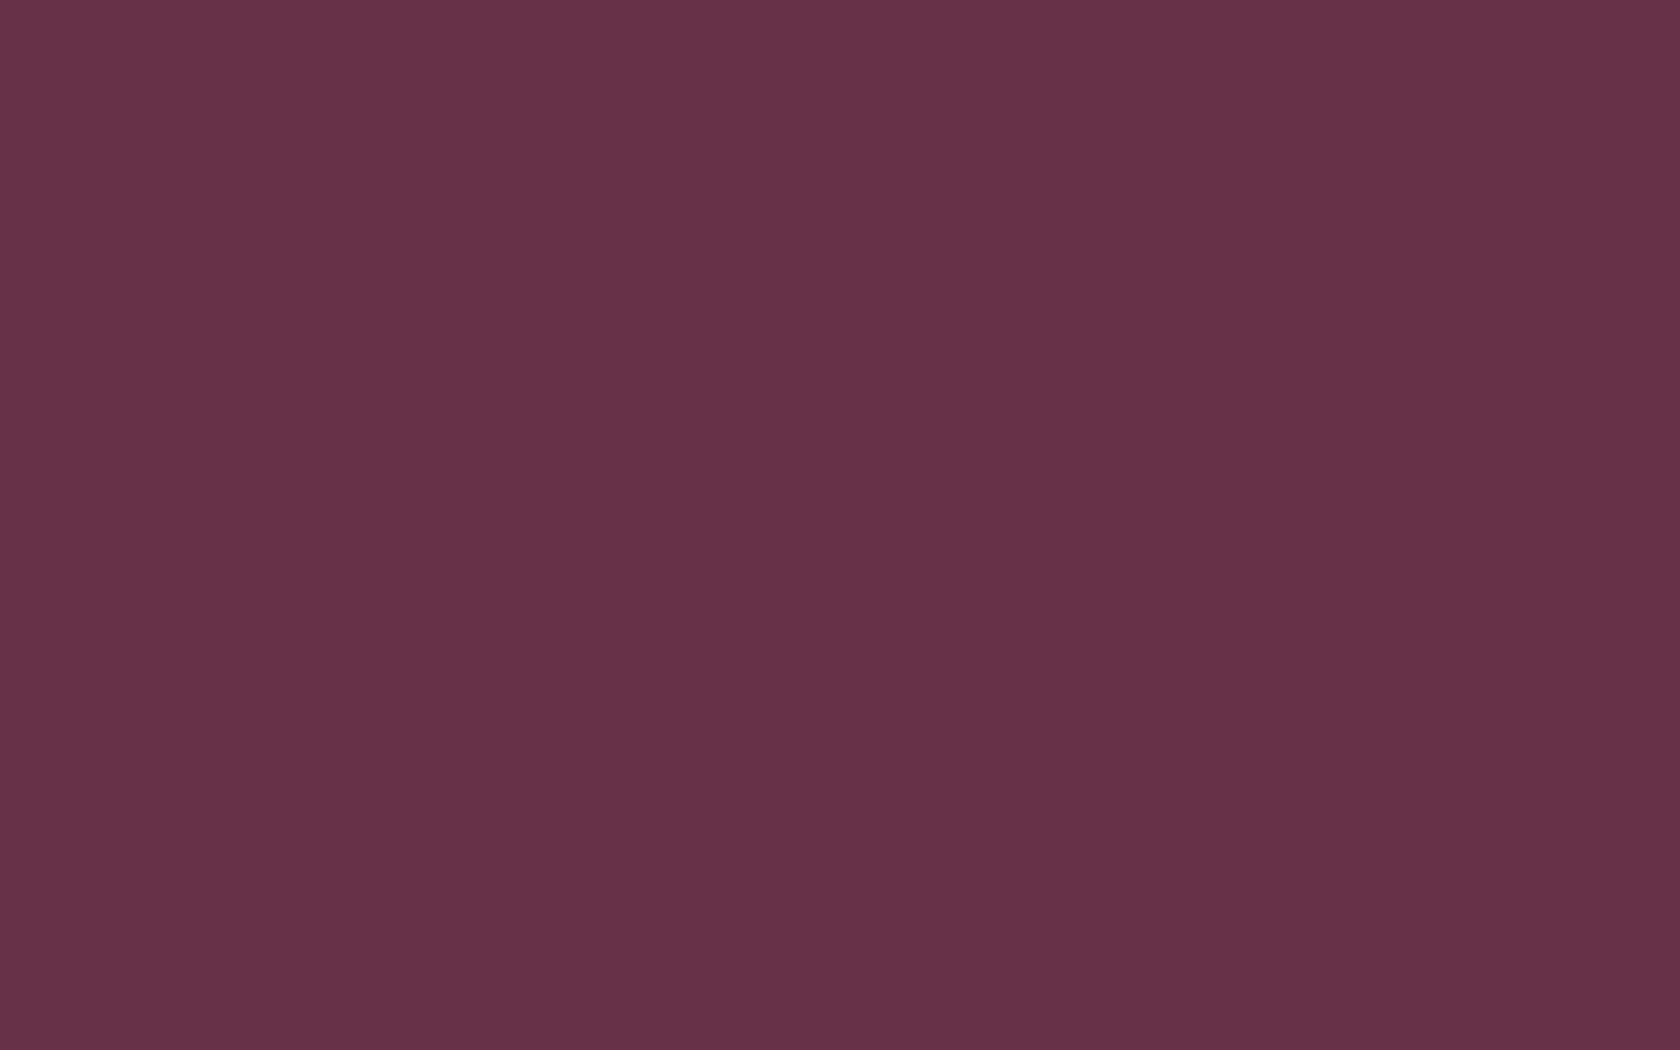 1680x1050 Old Mauve Solid Color Background